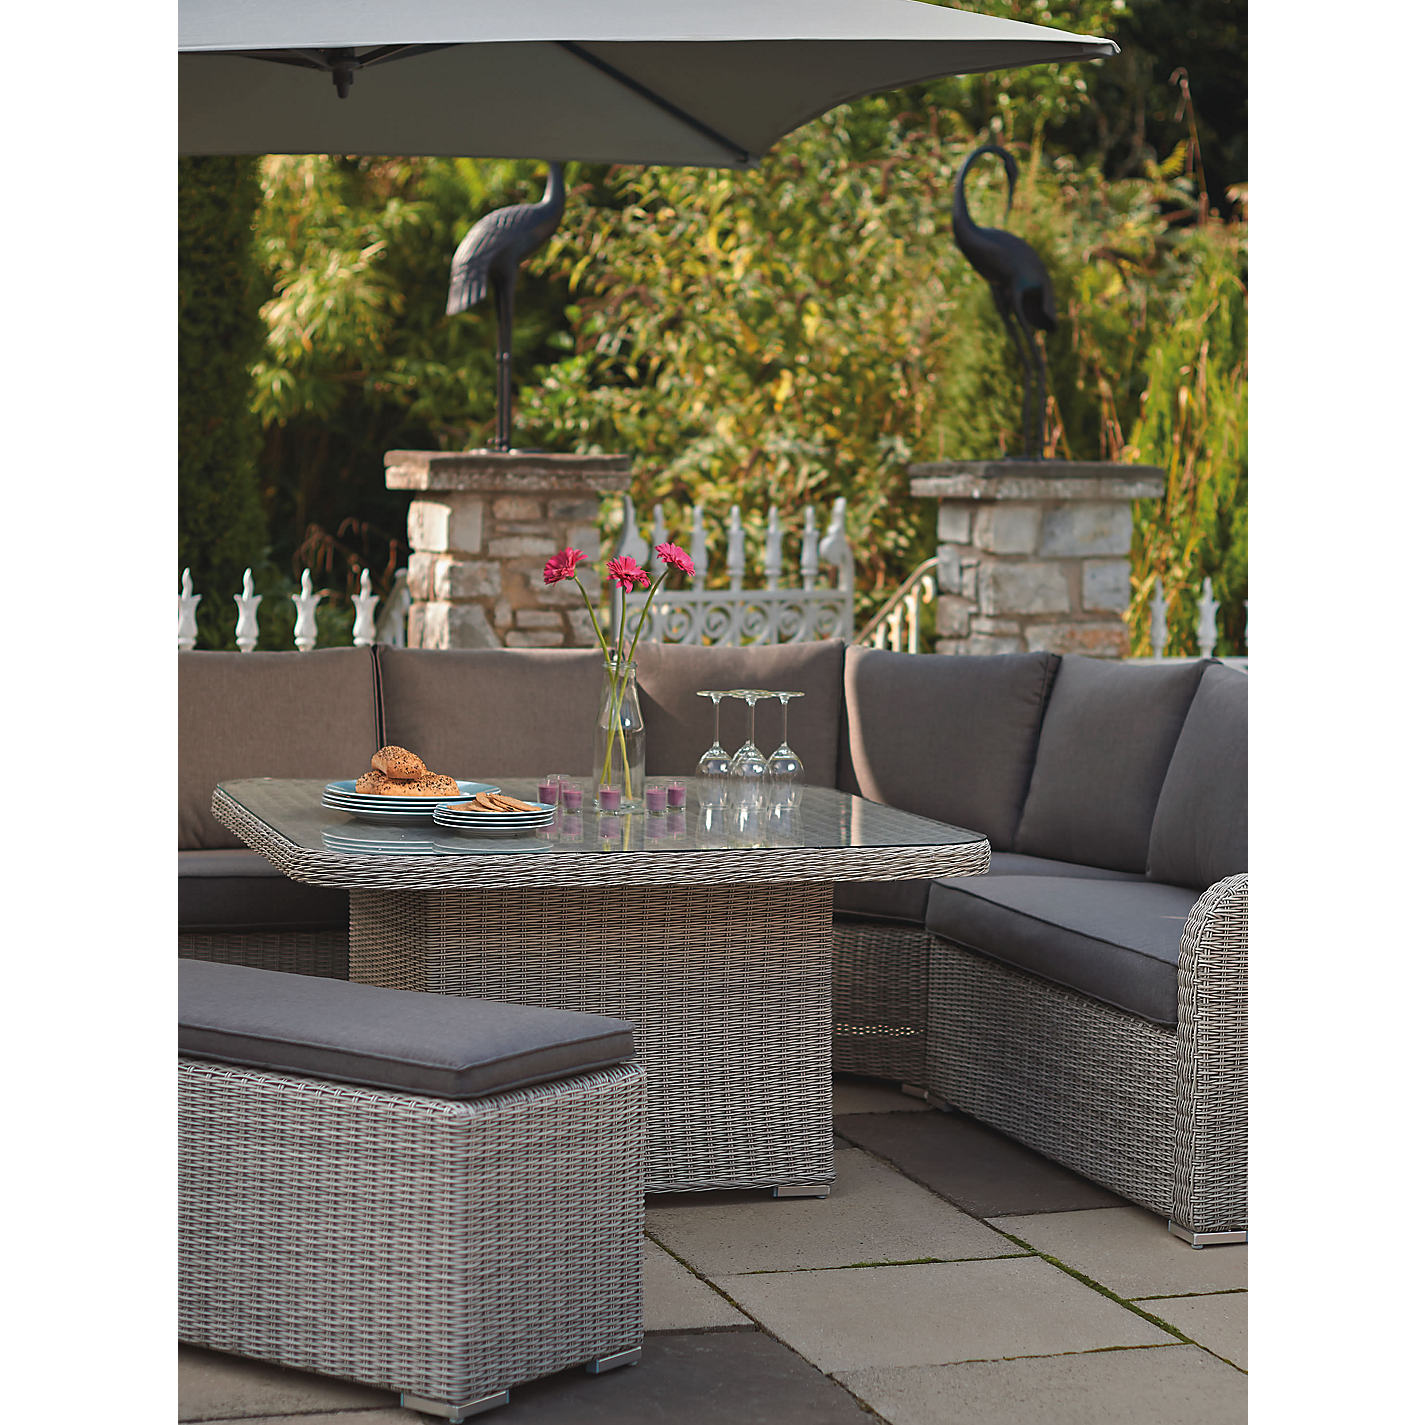 buy kettler madrid outdoor furniture range online at johnlewiscom - Garden Furniture Kettler